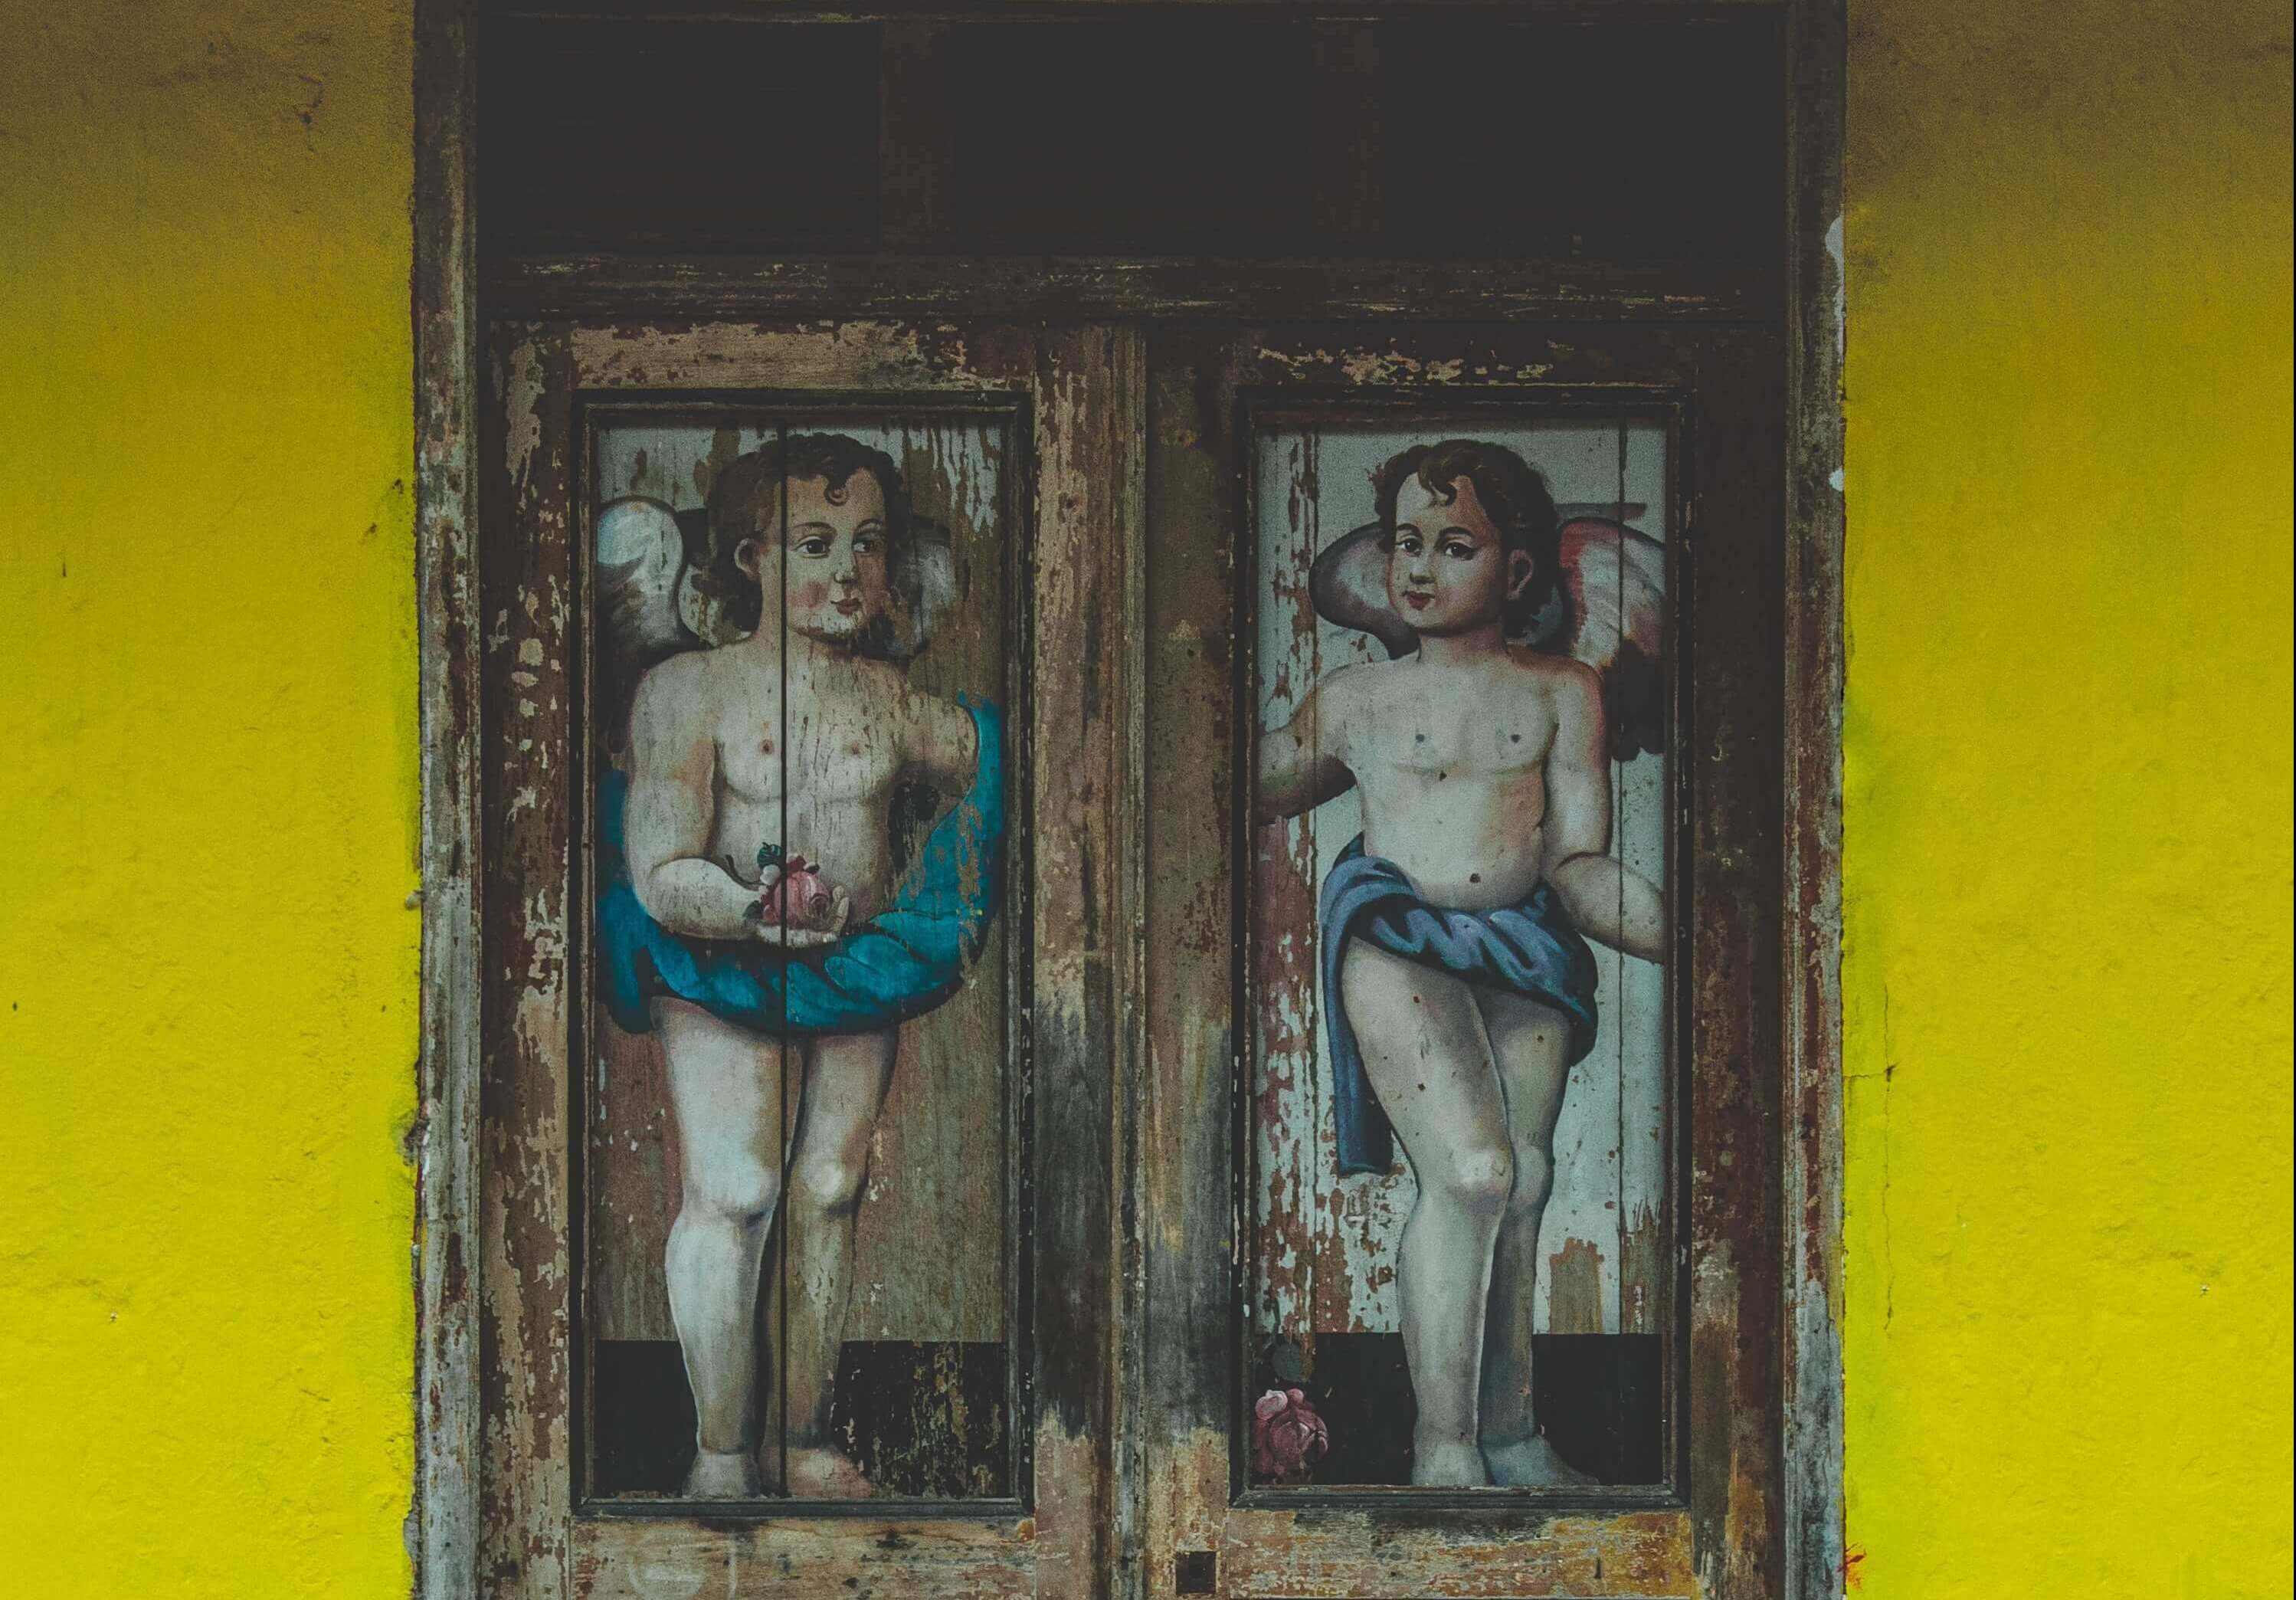 How is AI to tell right or wrong, good or evil? Photo by Ronaldo de Oliveira on Unsplash